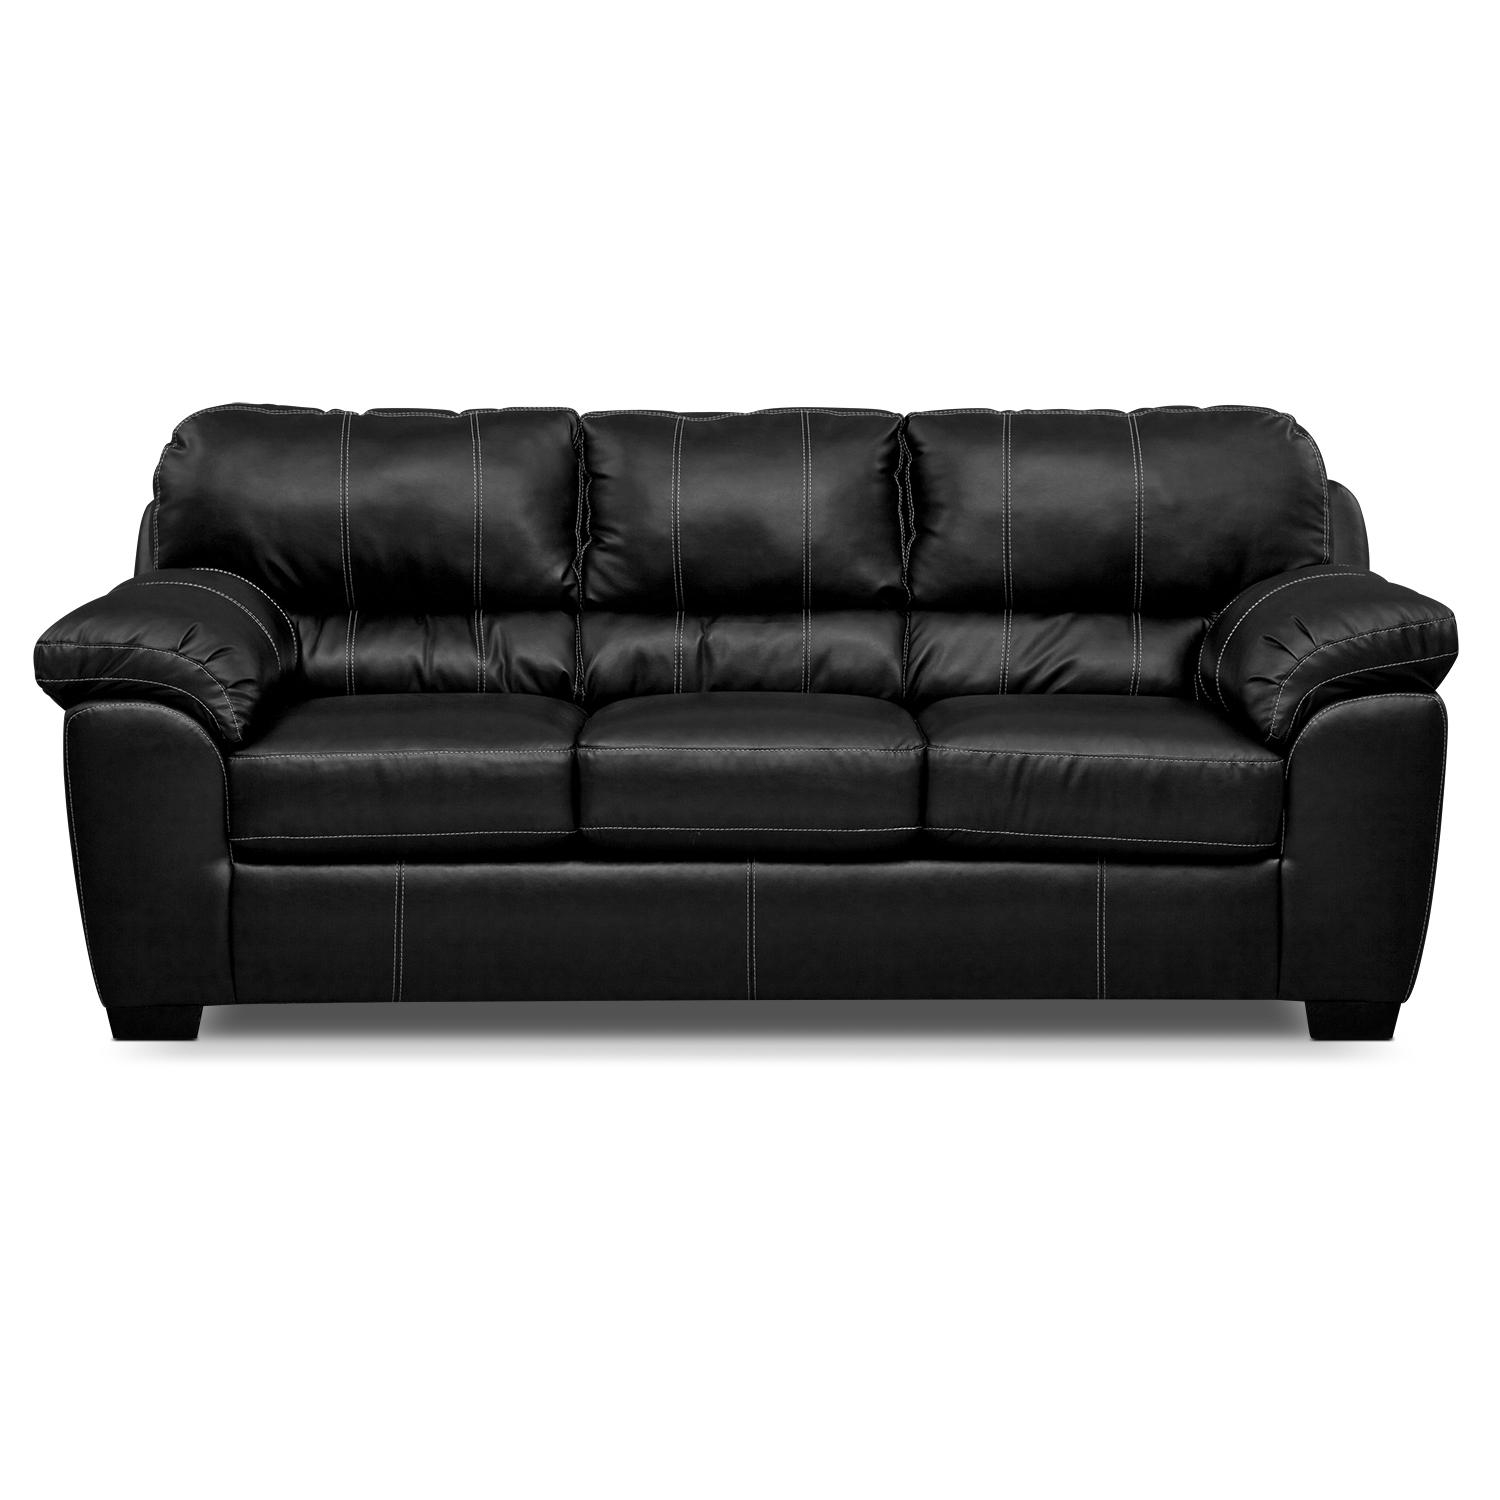 Sofas Center : Faux Leatherleeperofa 87F2517A59Db 1 Mainstays With Faux Leather Sleeper Sofas (View 13 of 20)